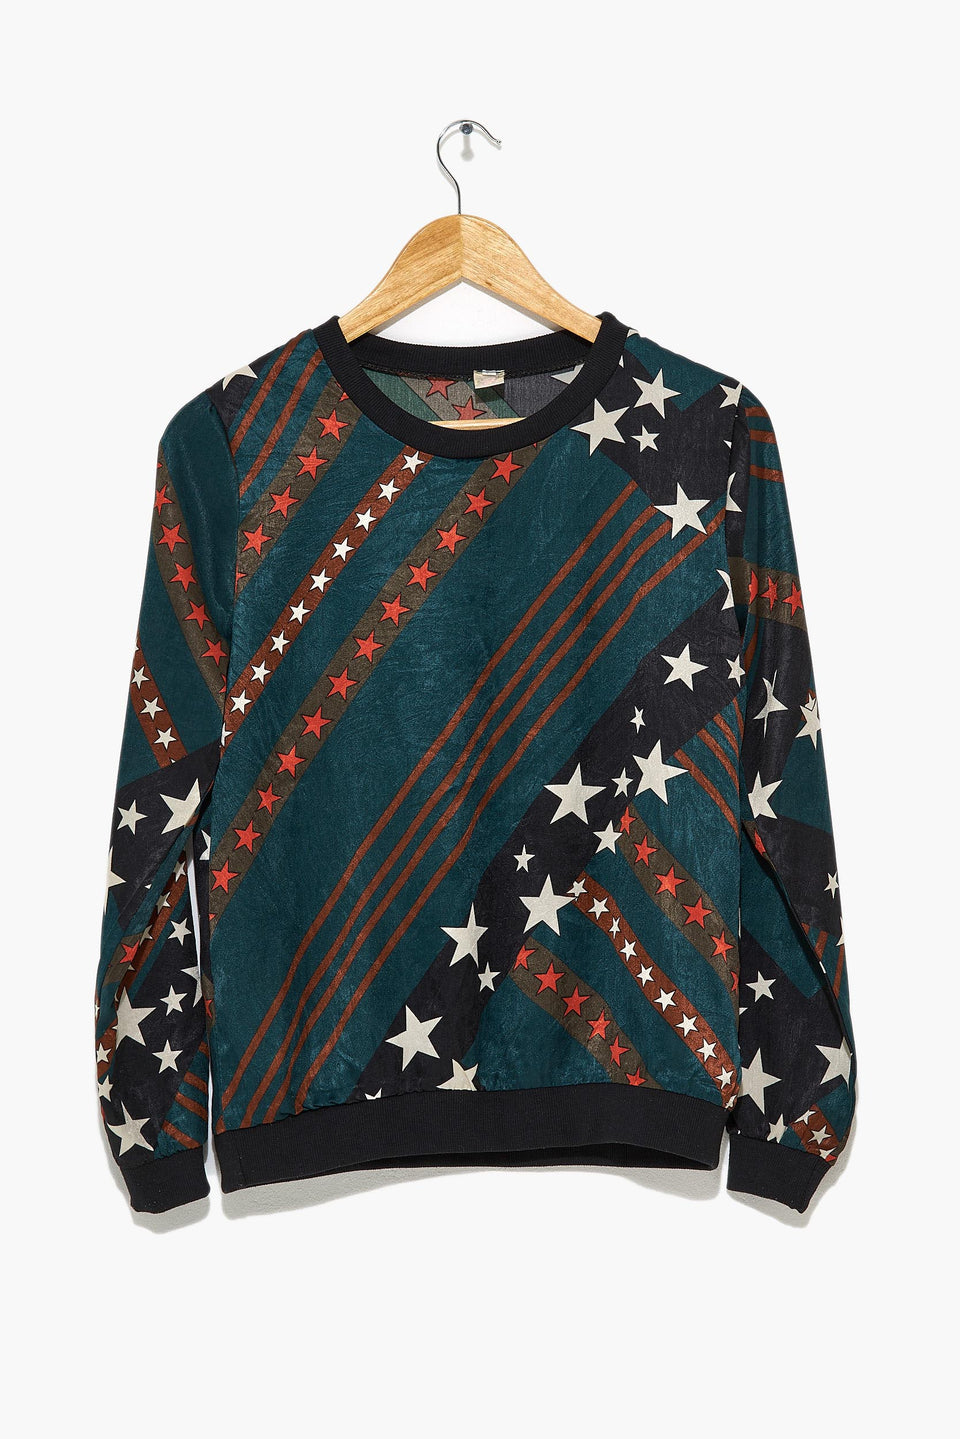 LIKE A STAR Sweater